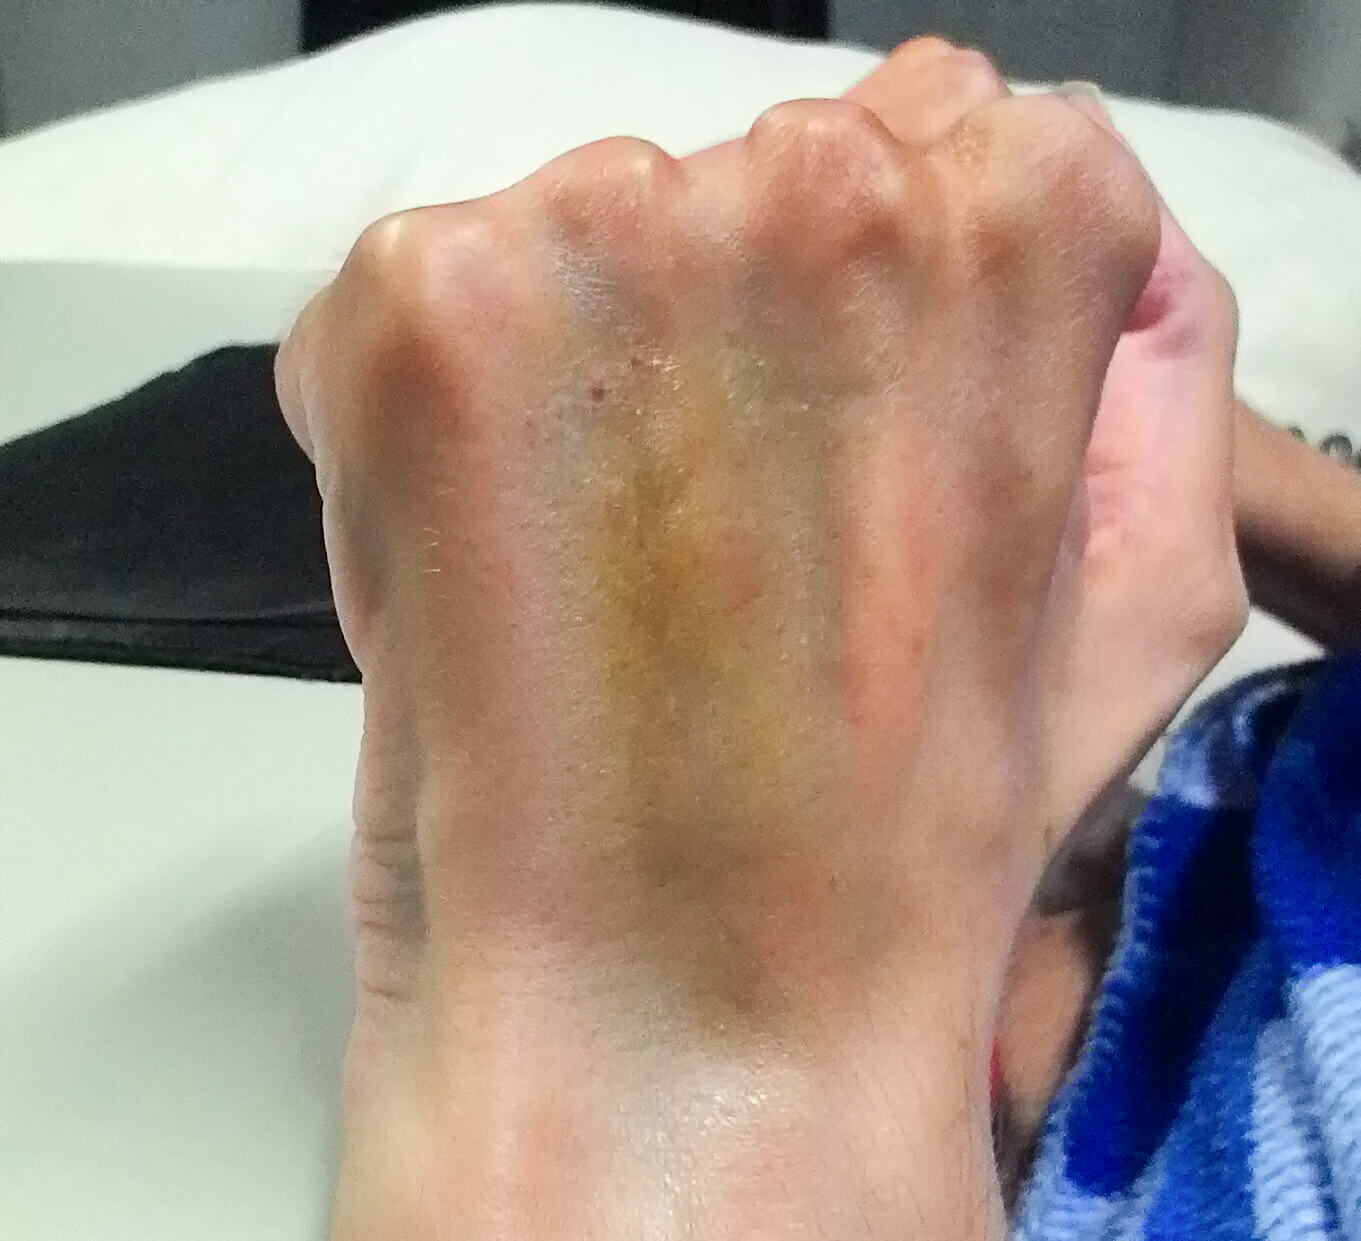 the back of a hand with some purple and yellow bruising